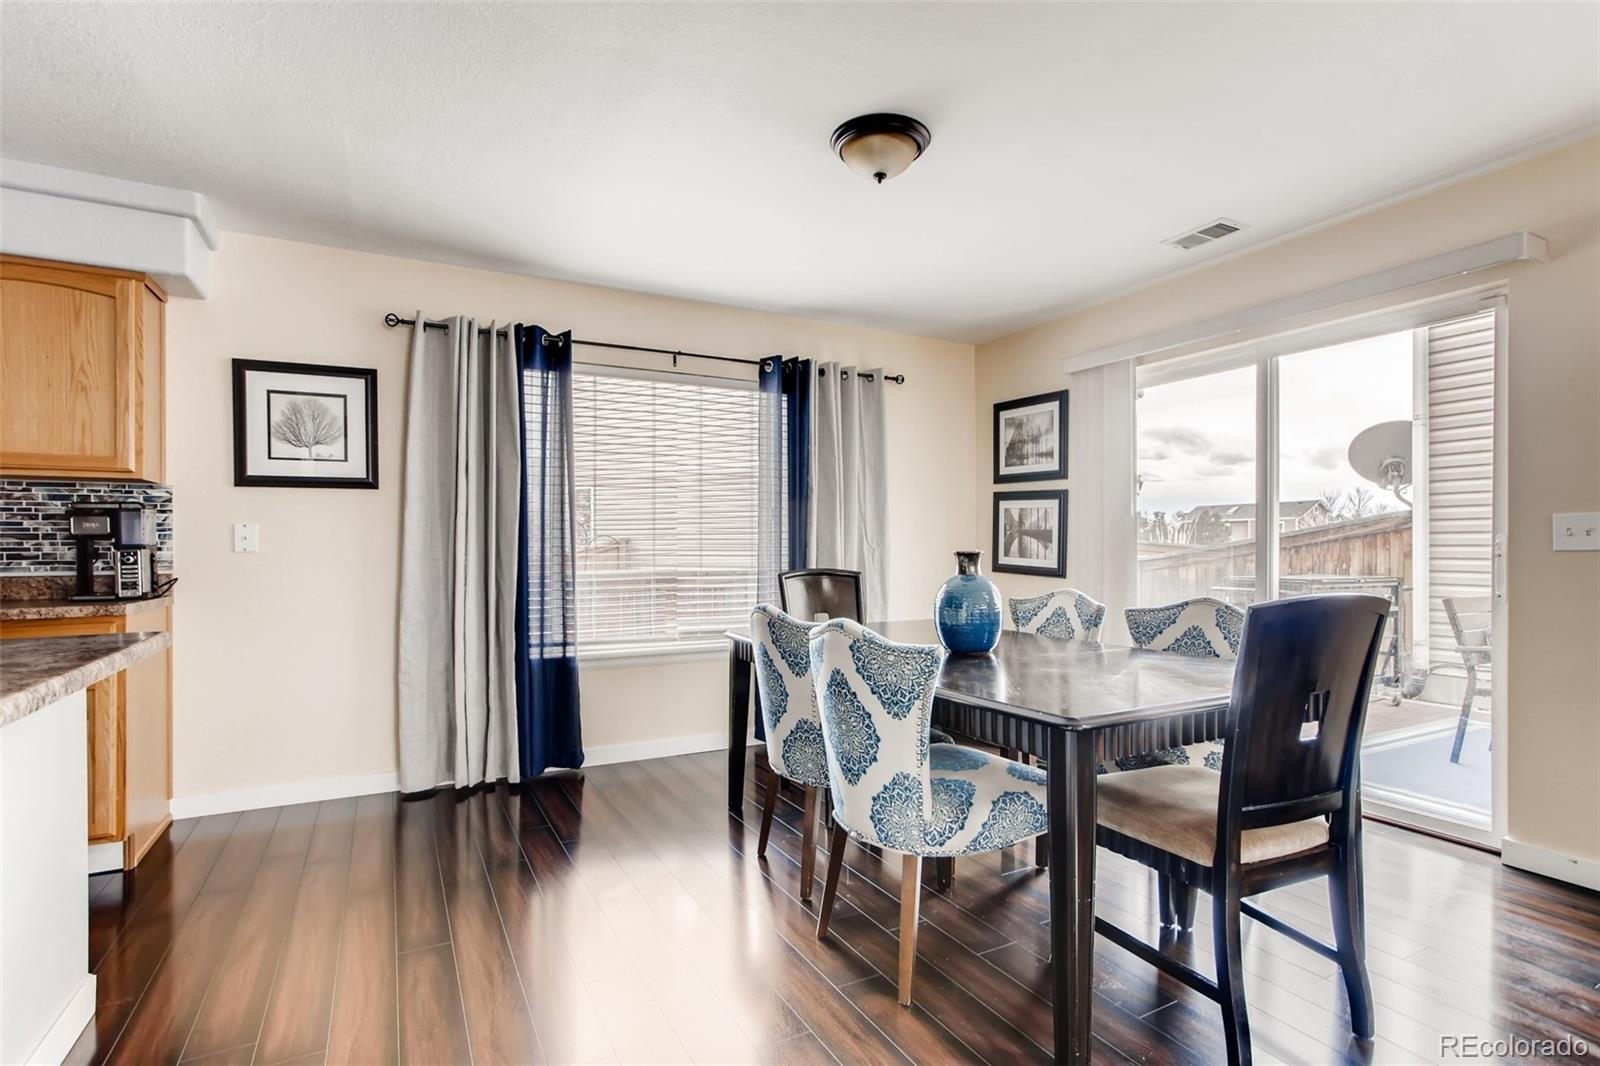 MLS# 3131128 - 6 - 20000 Mitchell Place #64, Denver, CO 80249